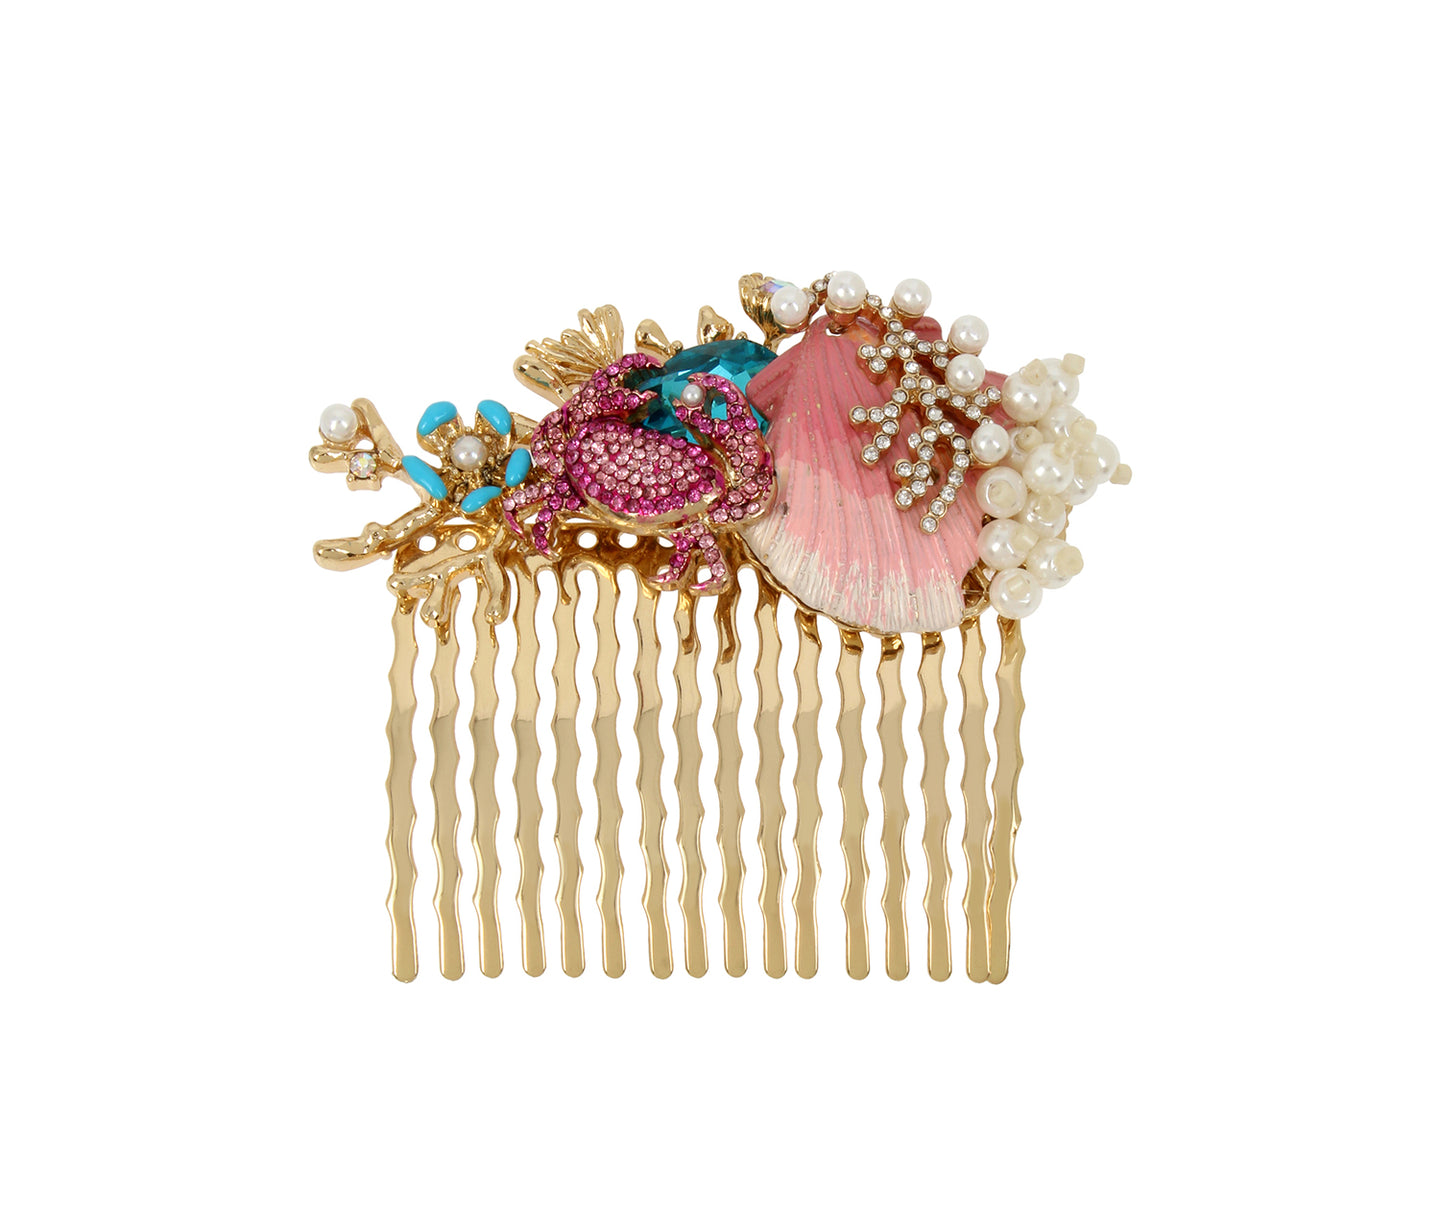 FESTIVAL MERMAID SEALIFE COMB MULTI - ACCESSORIES - Betsey Johnson